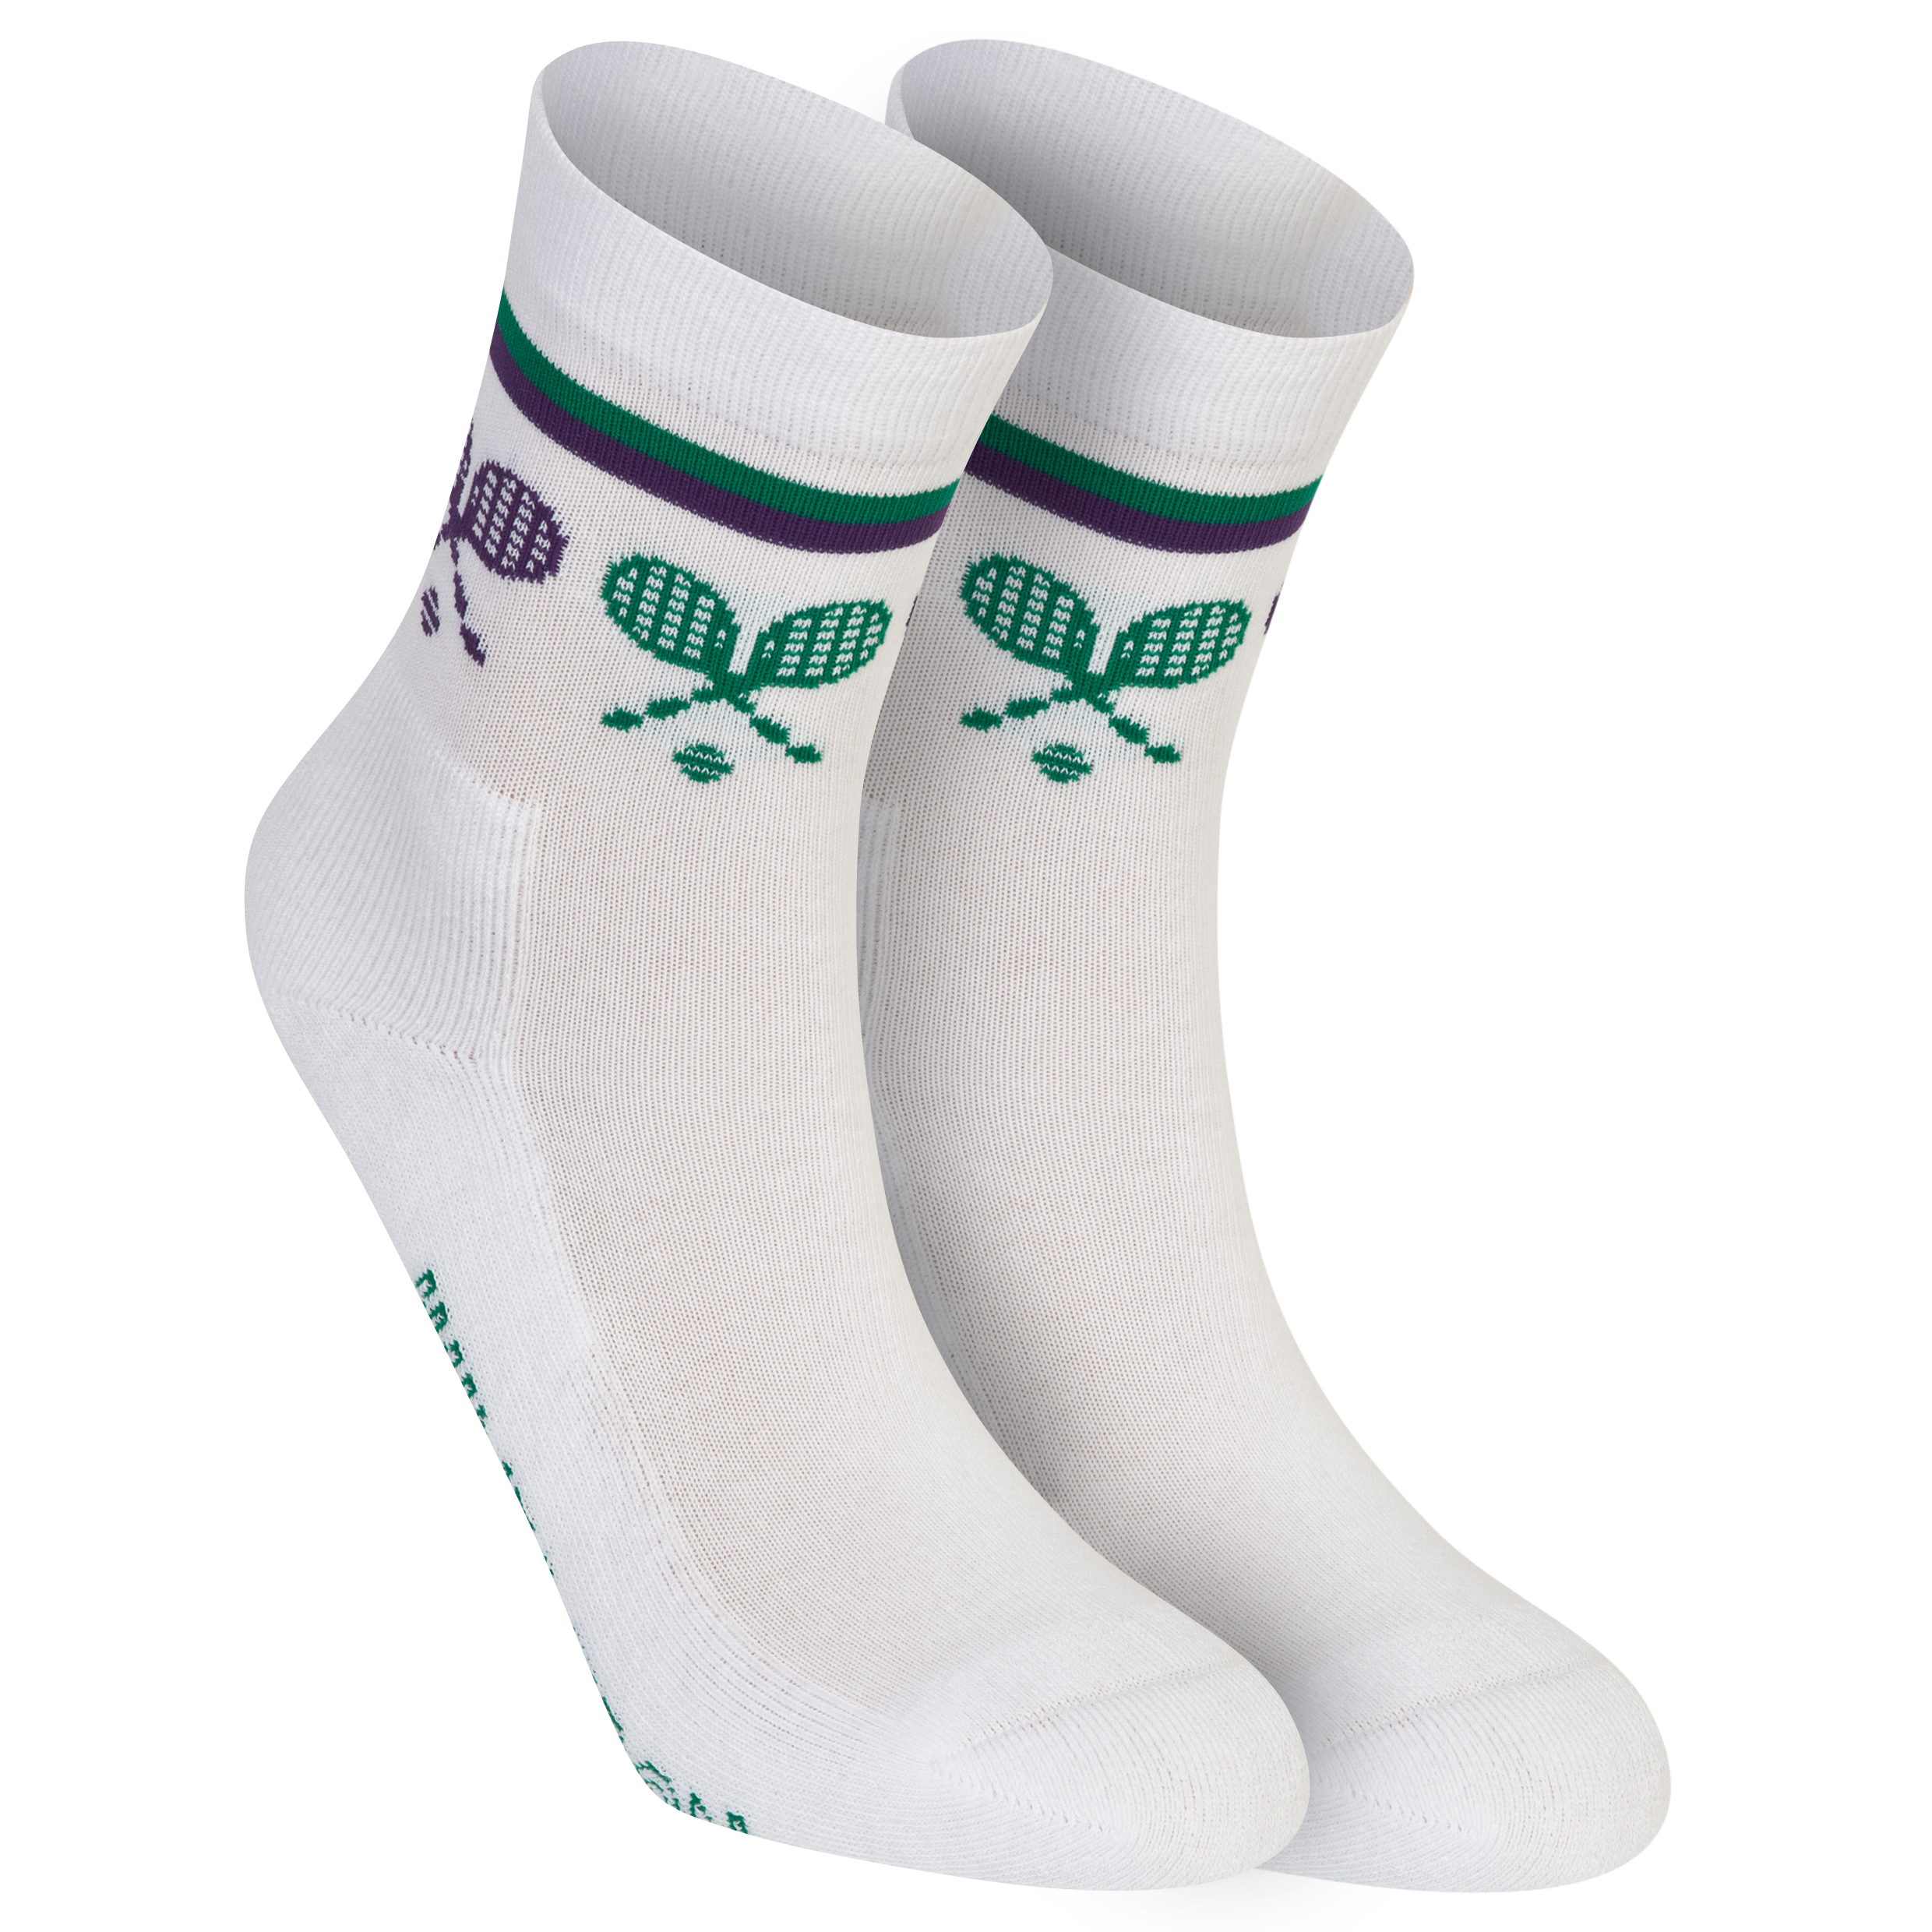 Wimbledon Crossed Racket Socks - Kids White